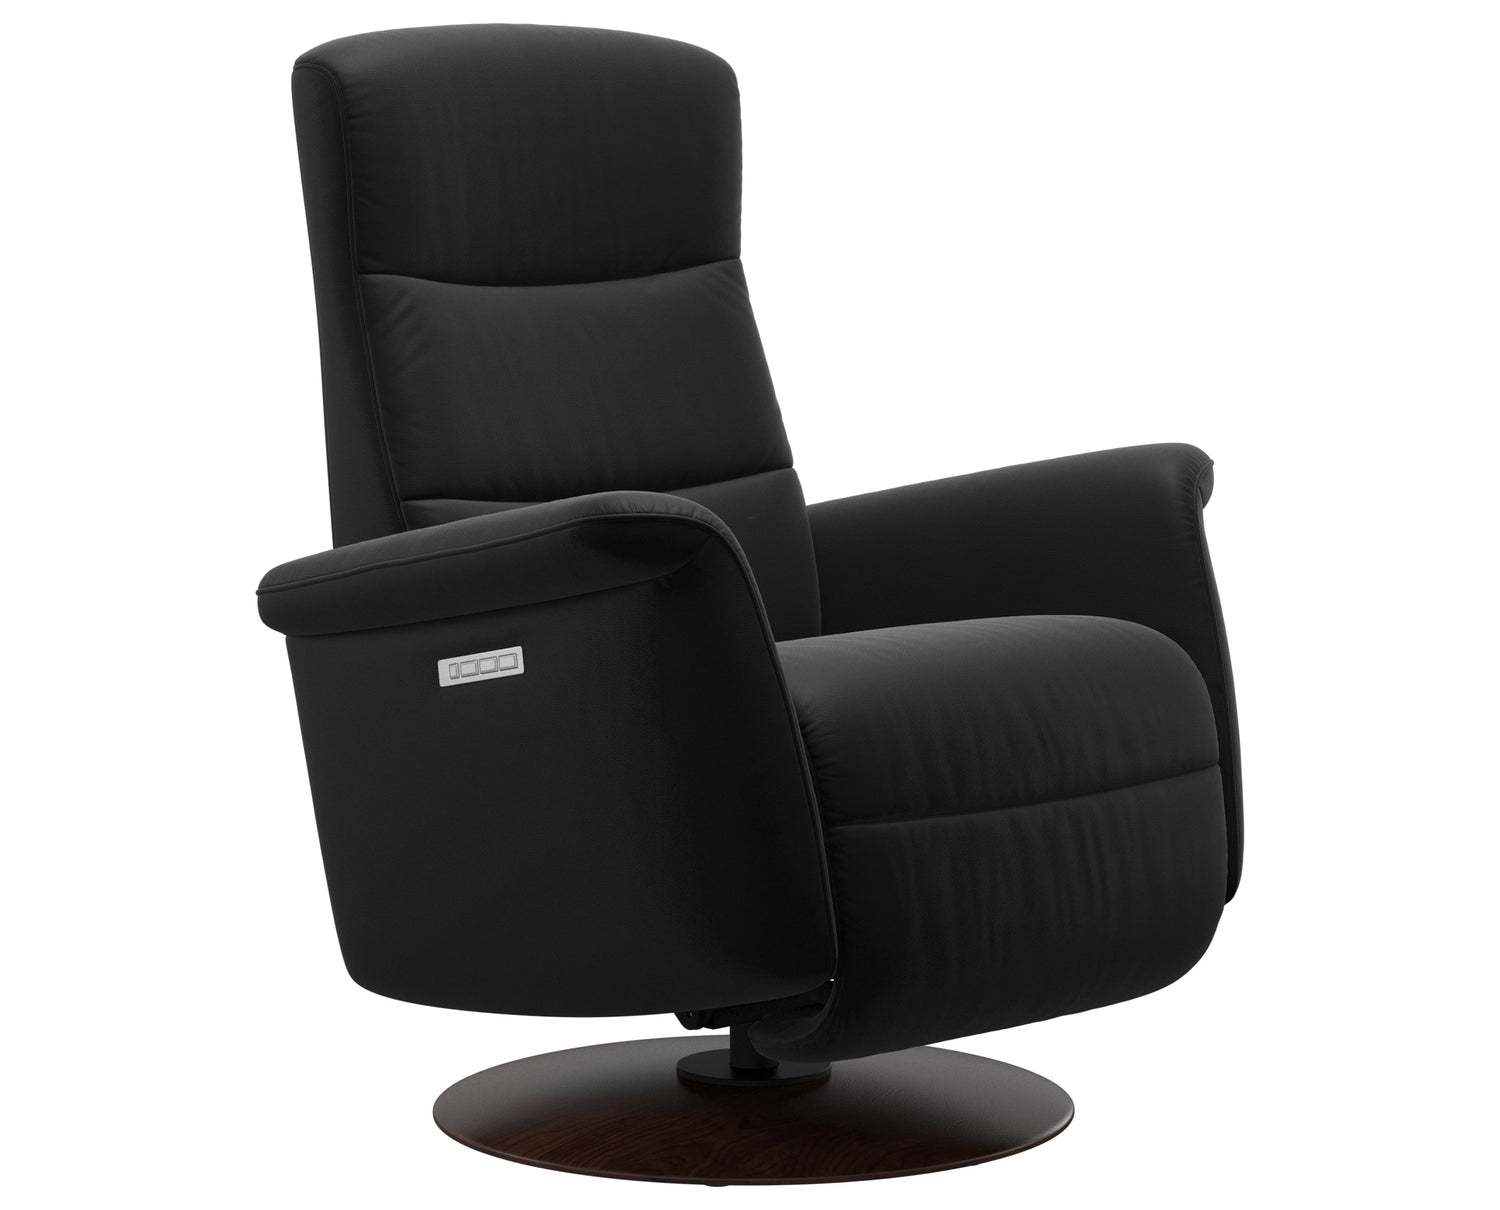 Paloma Leather Black S/M/L & Brown Base | Stressless Mike Recliner | Valley Ridge Furniture